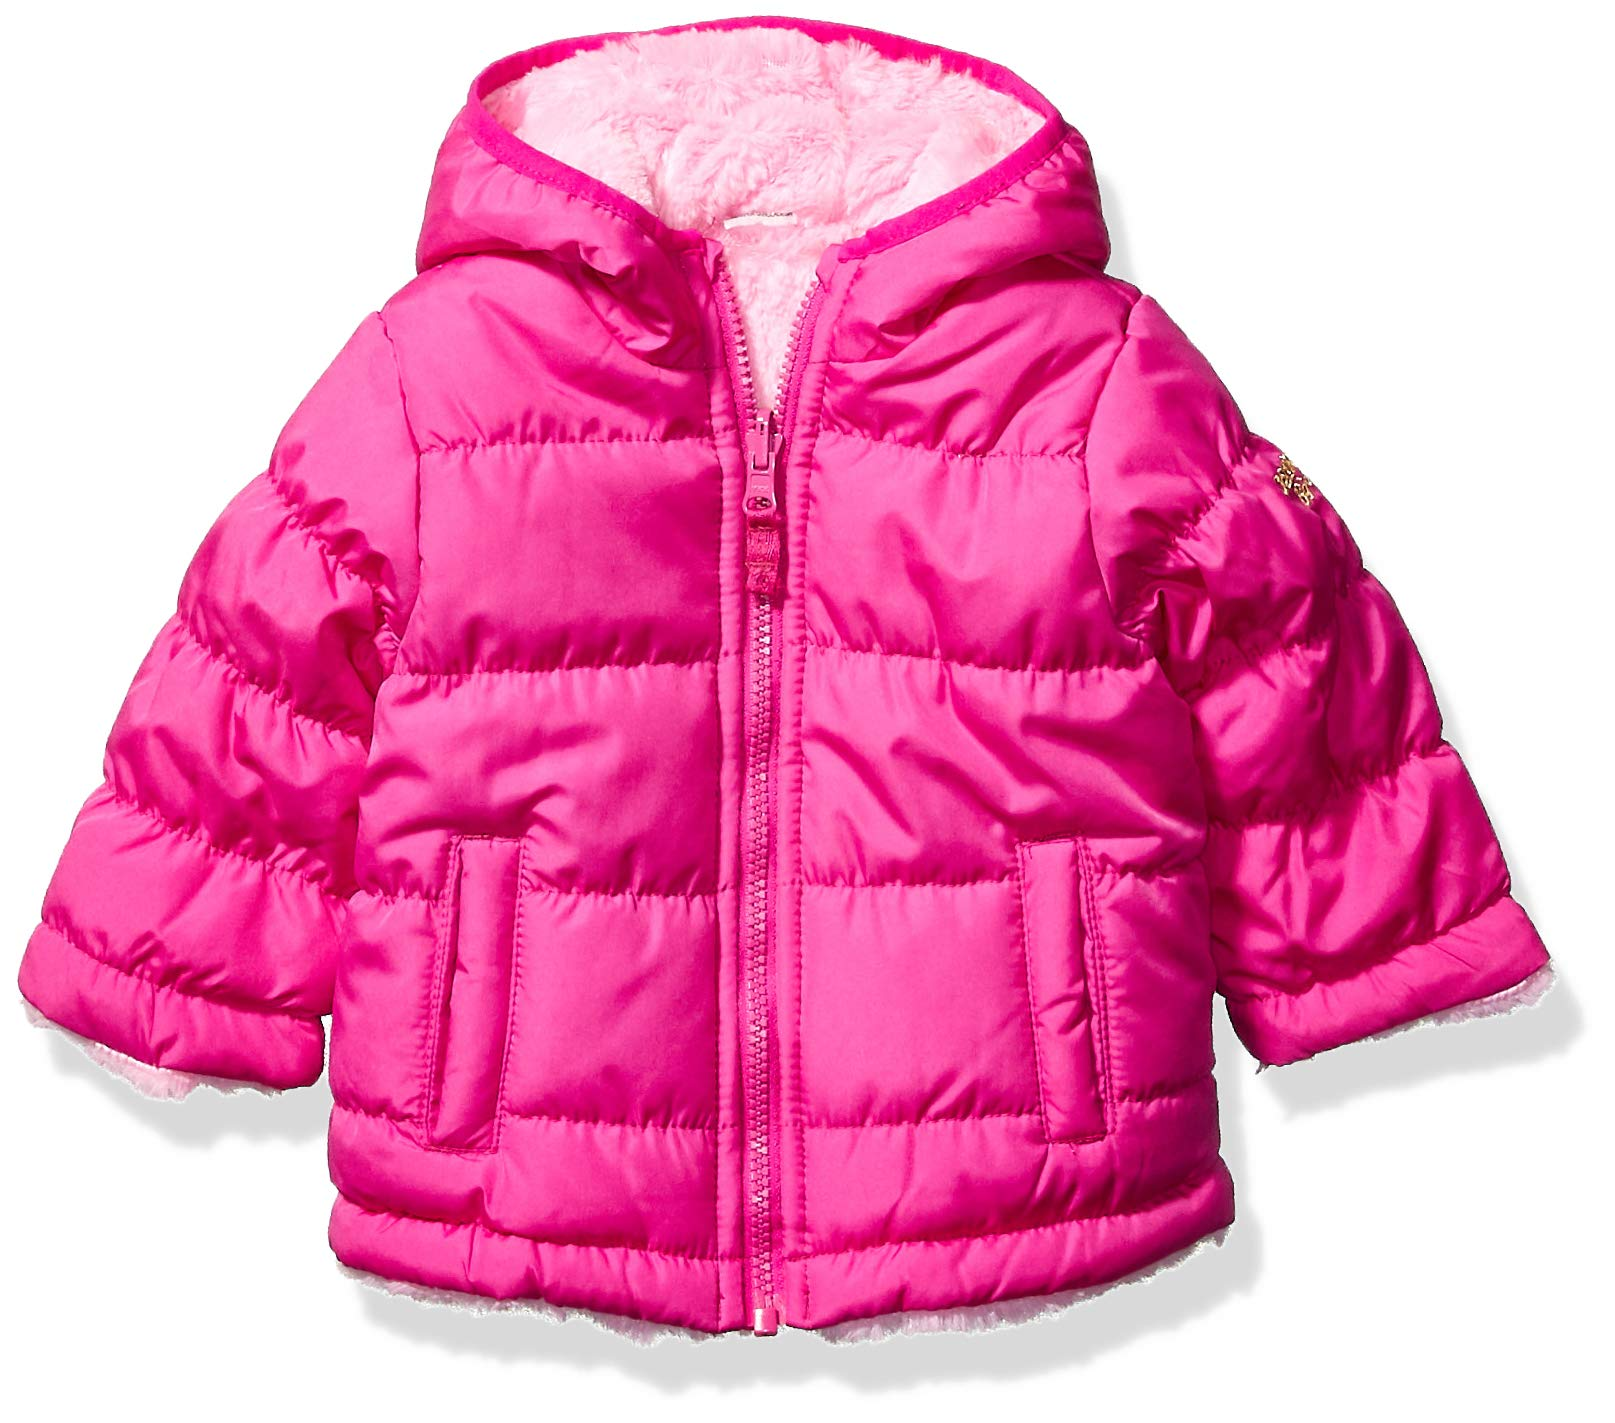 Osh Kosh Baby Girls Reversible Puffer Jacket Coat, Fuchsia to Cozy Pink, 12Mo by OshKosh B'Gosh